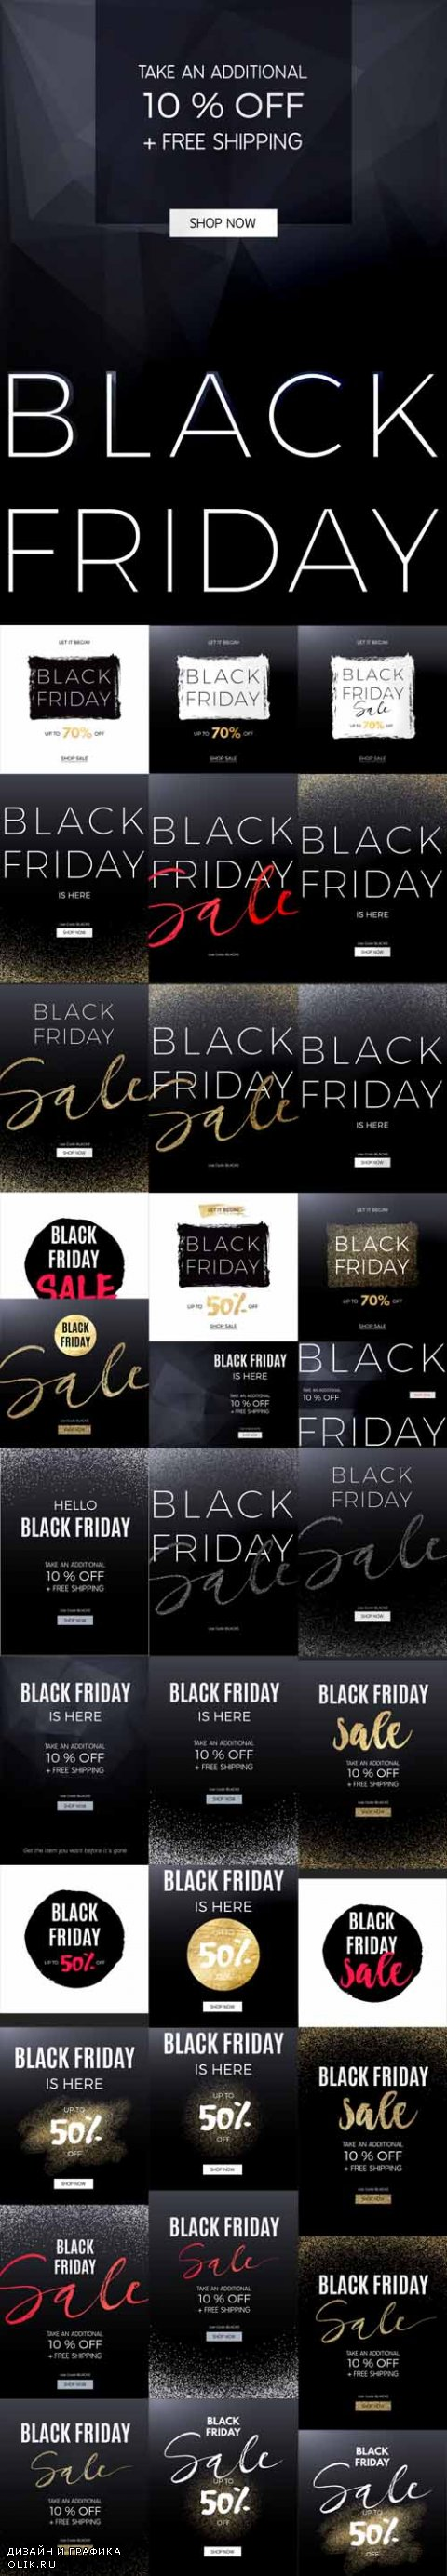 Vector Black Friday design for advertising, banners, leaflets and flyers